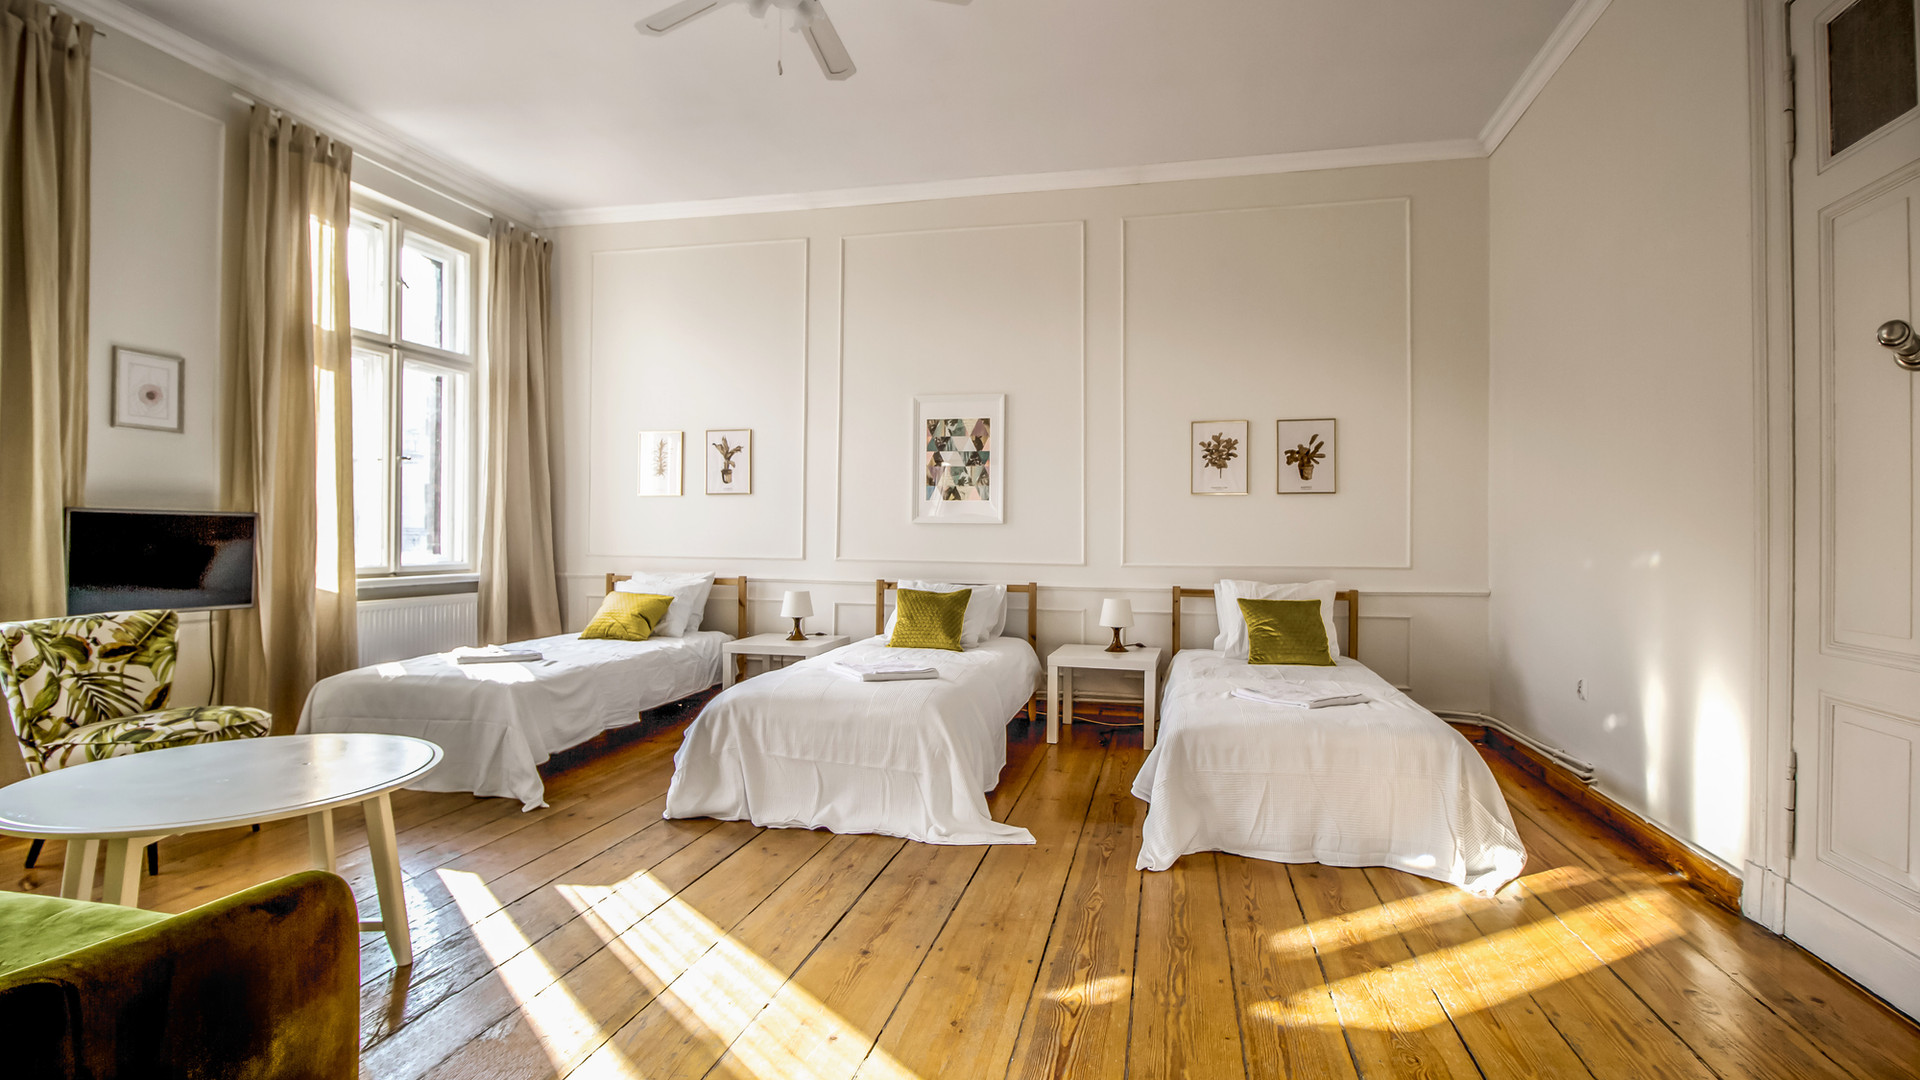 Apartmemt for 5 persons Poznan Poland Old Town.jpg